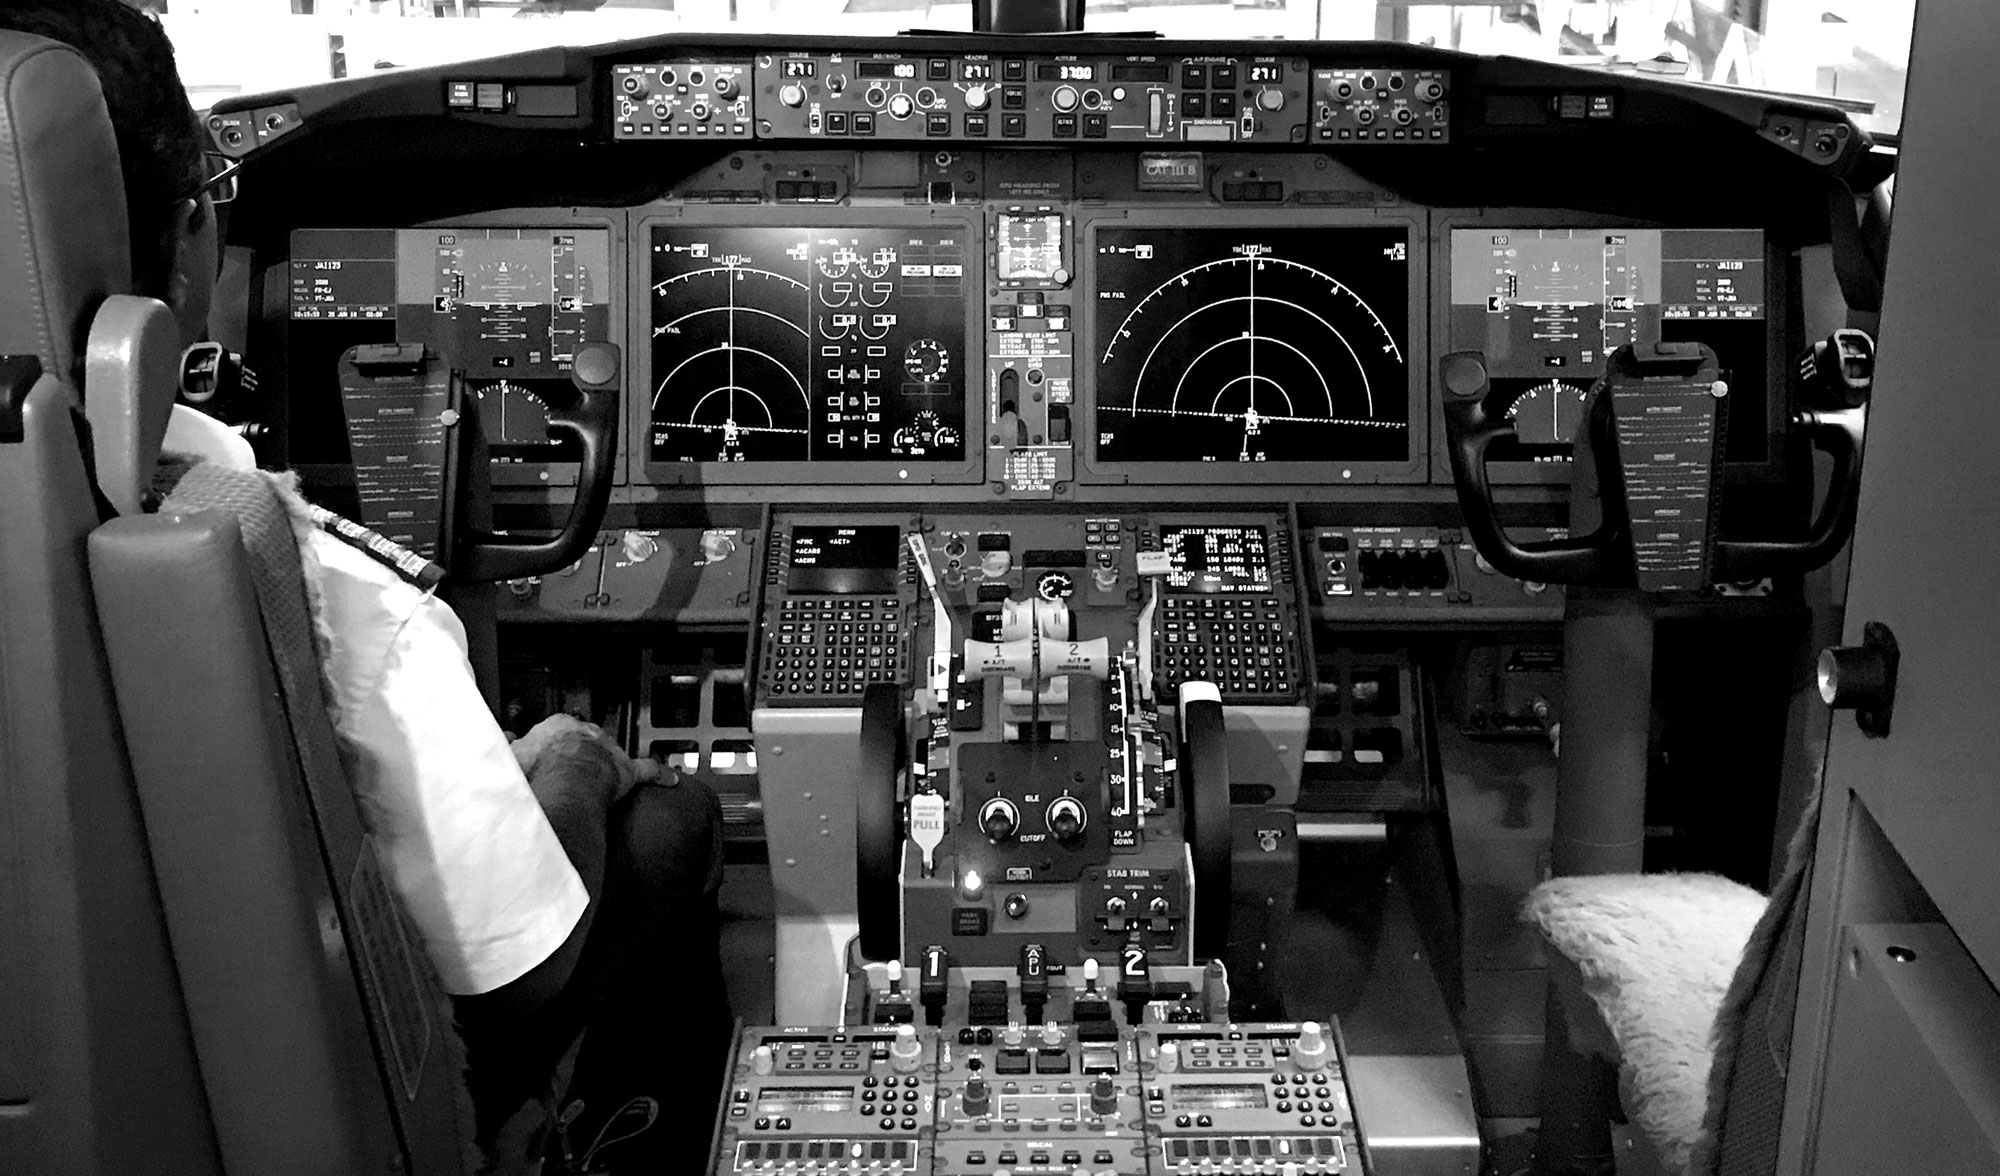 Change to 737 MAX controls may have imperiled planes